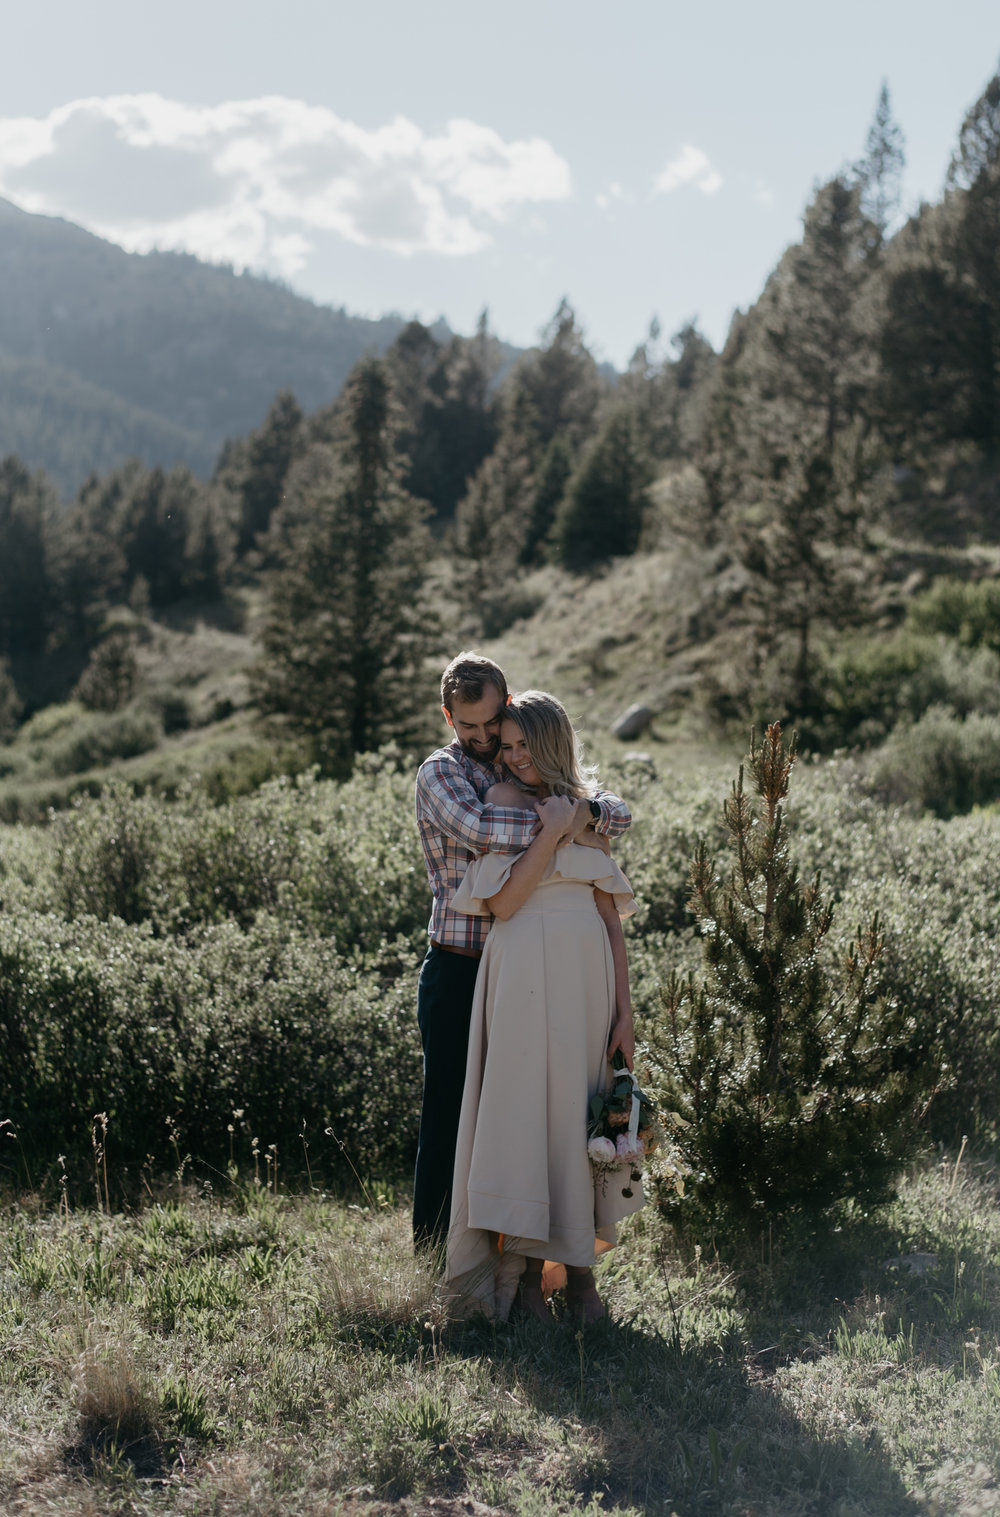 Aspen, Colorado destination wedding photographer. Colorado mountain elopement photographer.